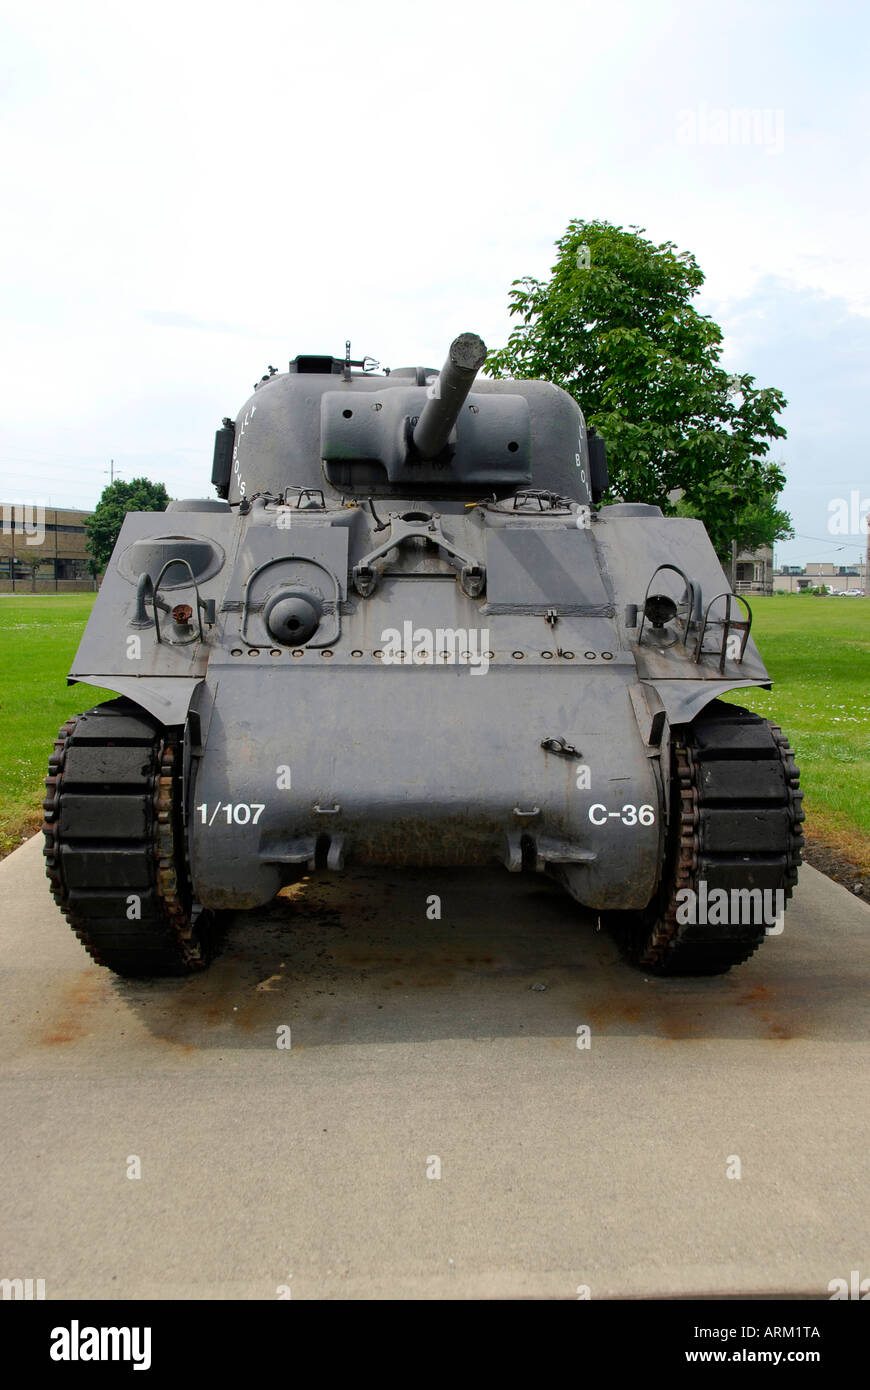 Mark I Sherman world war two military army tank located on the grounds of the Veterans Memorial Hospital at Sandusky Ohio OH - Stock Image